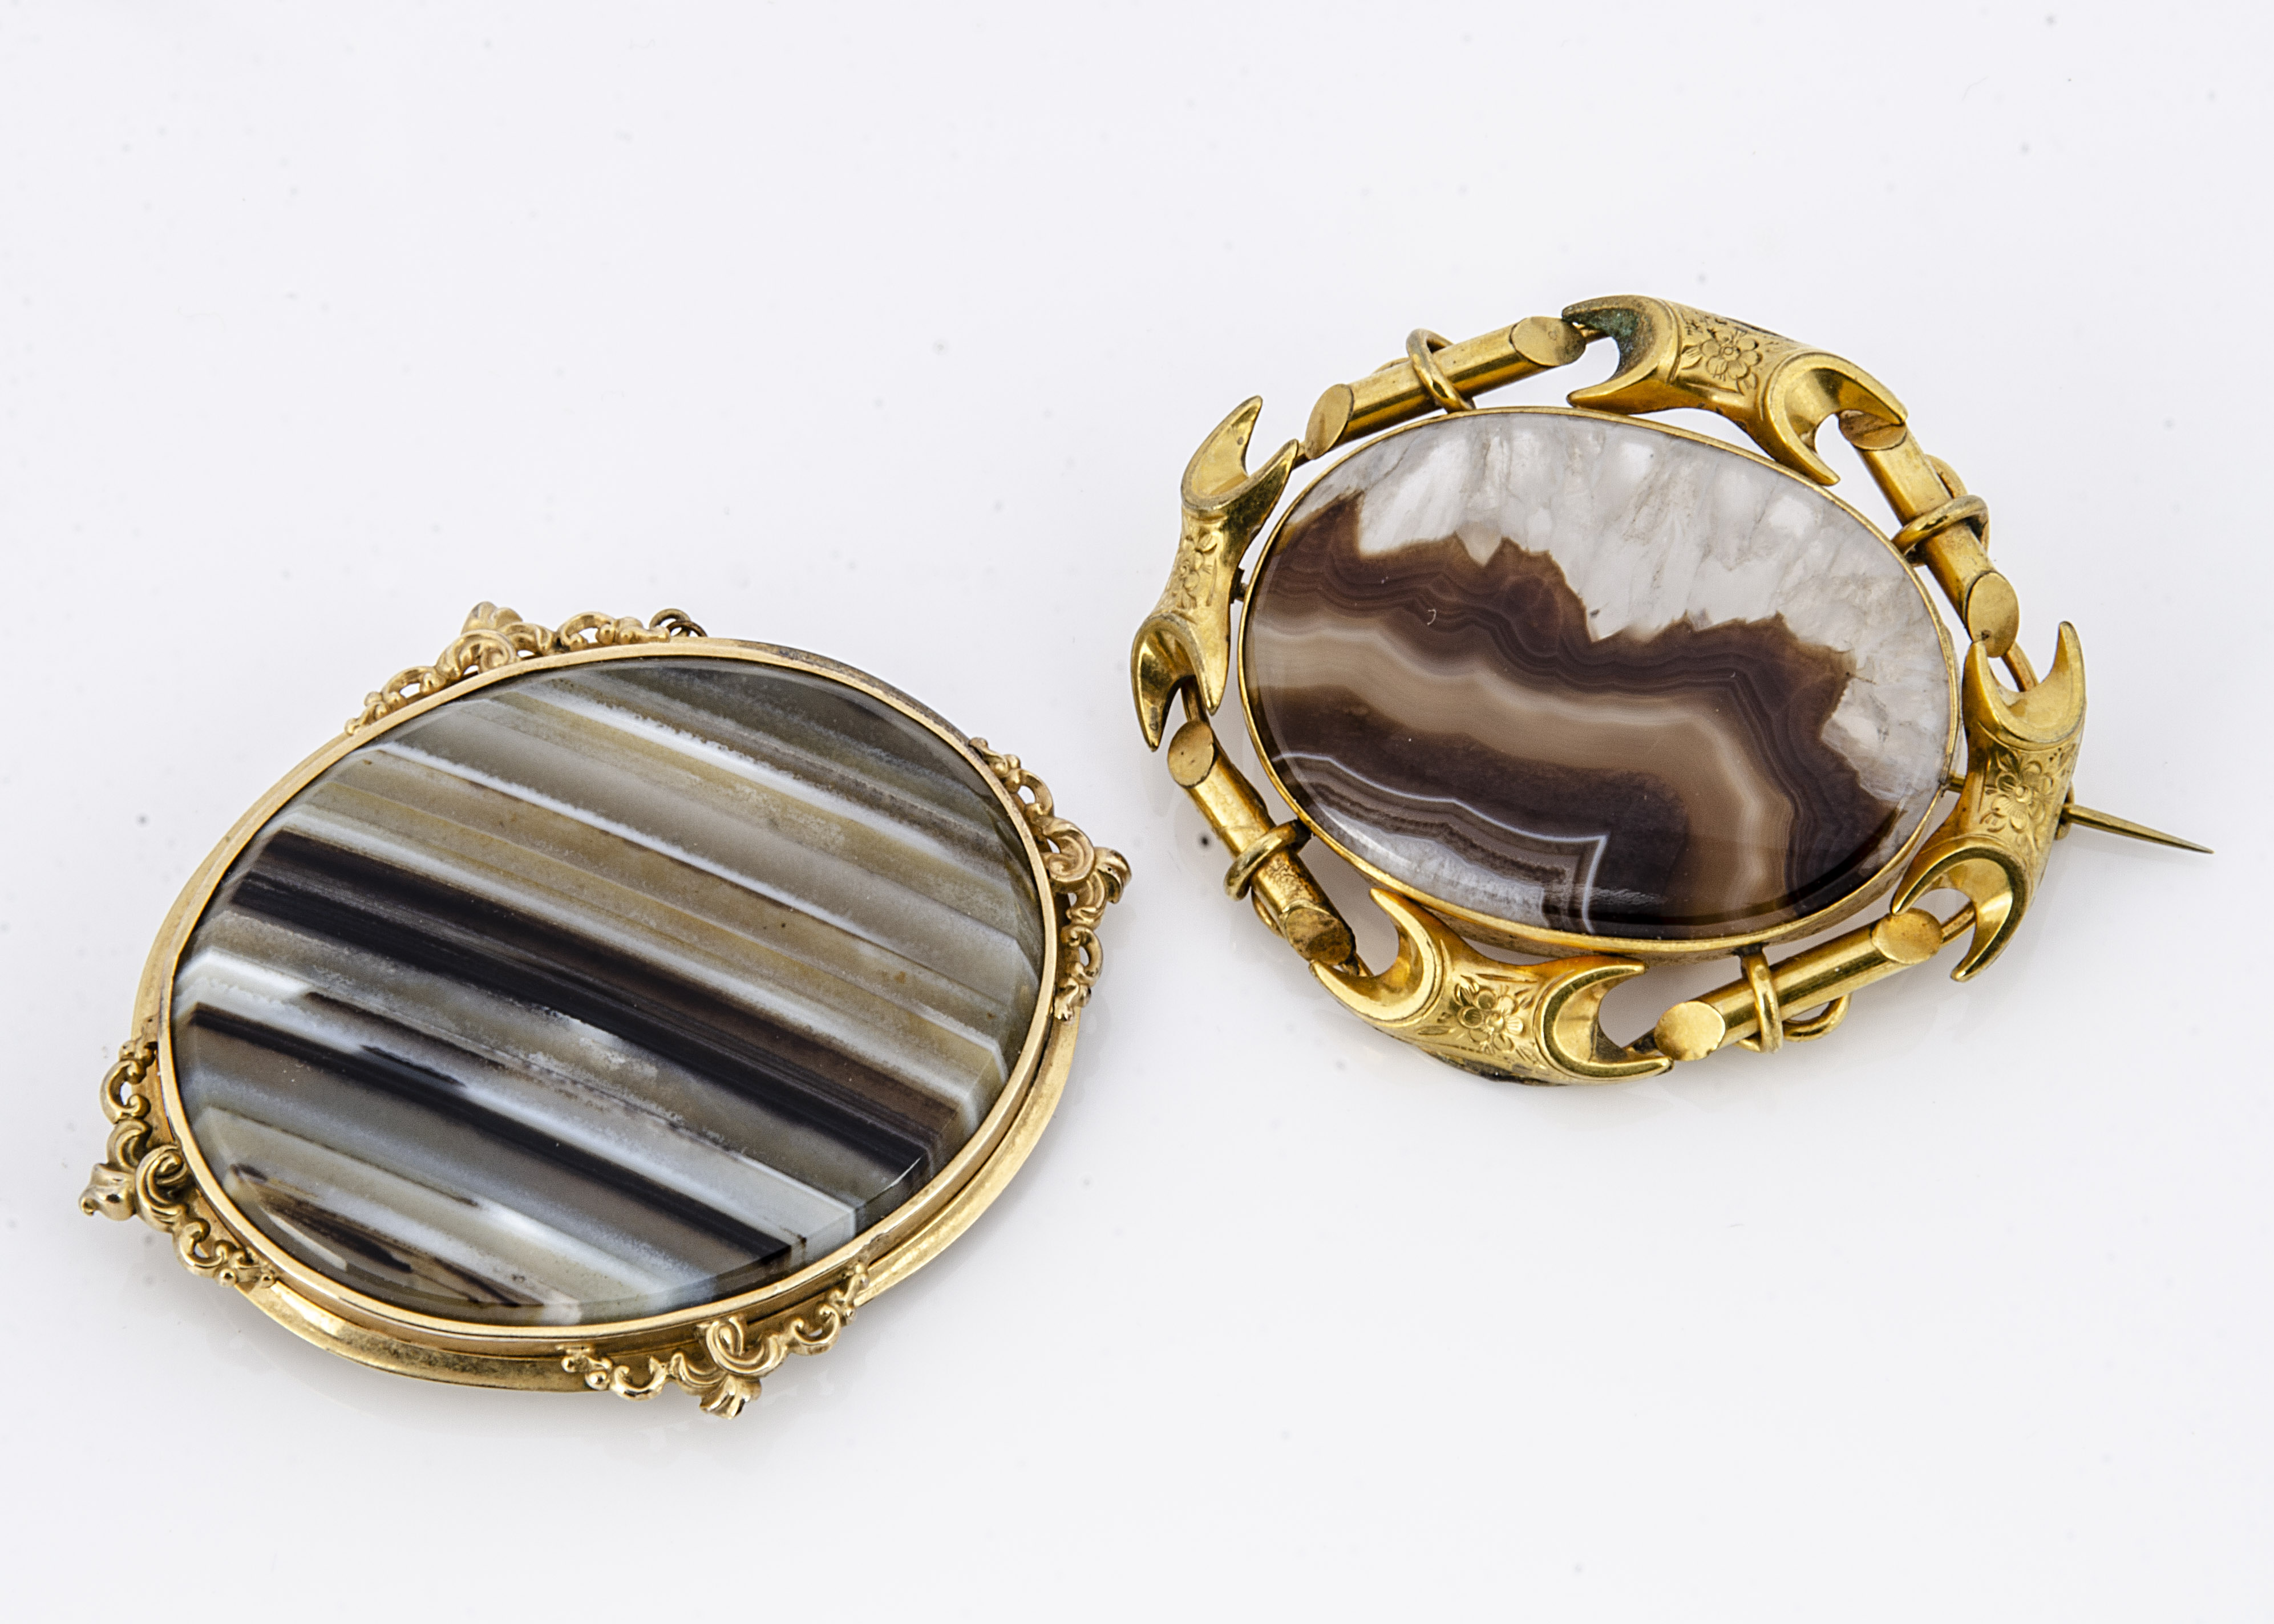 Two 19th Century agate and pinchbeck oval framed brooches, one with boxed back, 8cm x 6.5cm, the